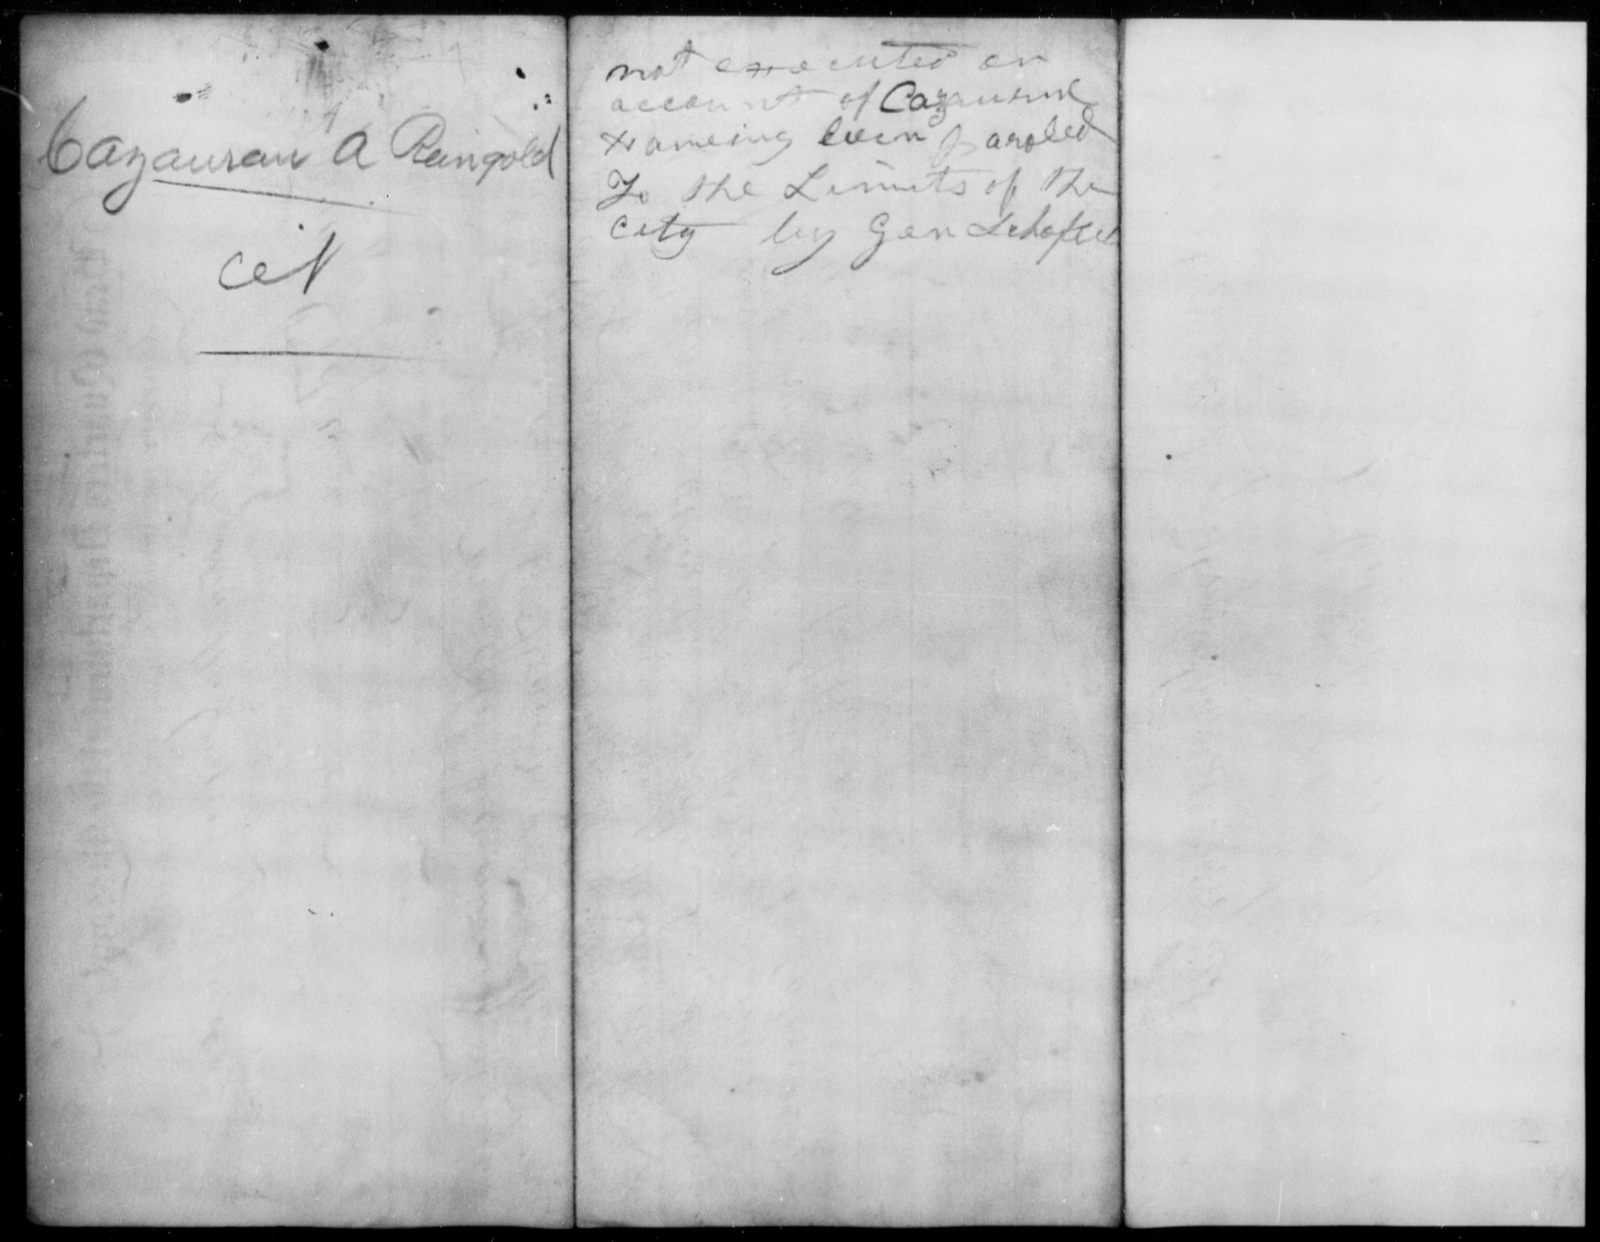 Reingold, Cazauran A - State: District of Columbia - Year: 1865